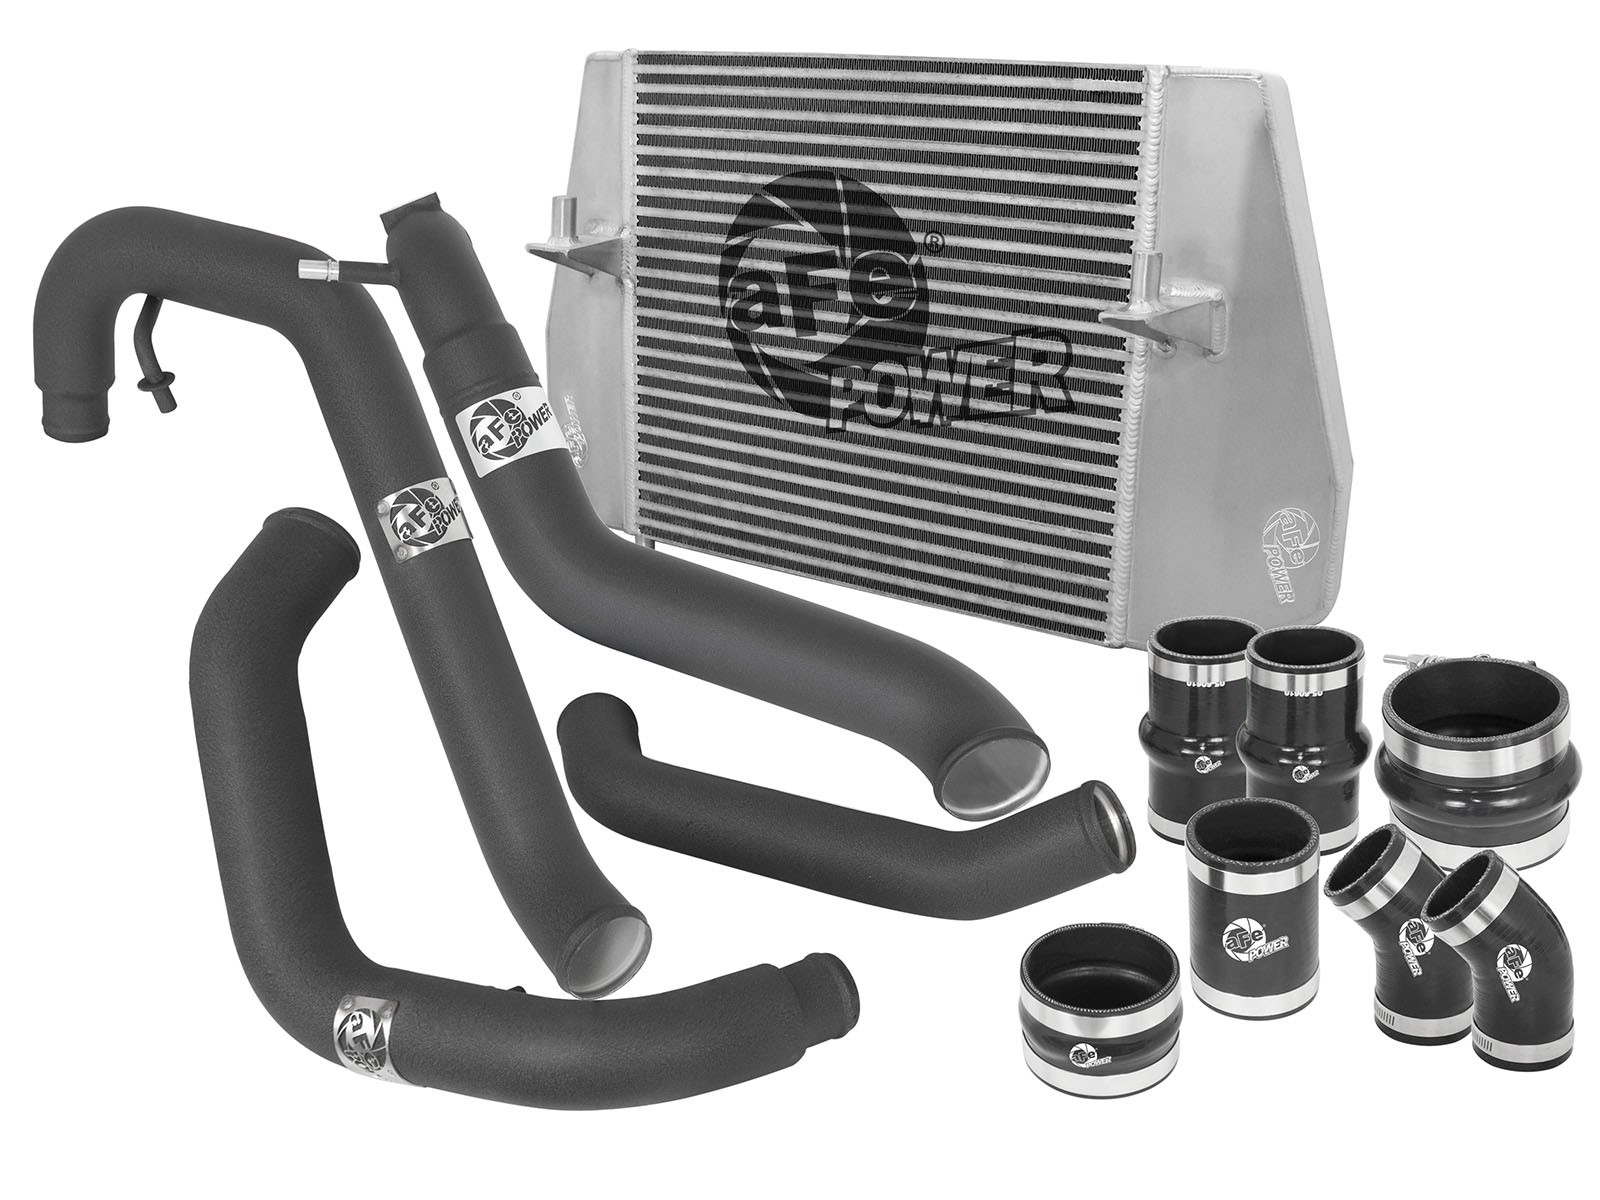 aFe POWER 46-20162-B BladeRunner GT Series Intercooler with Tubes